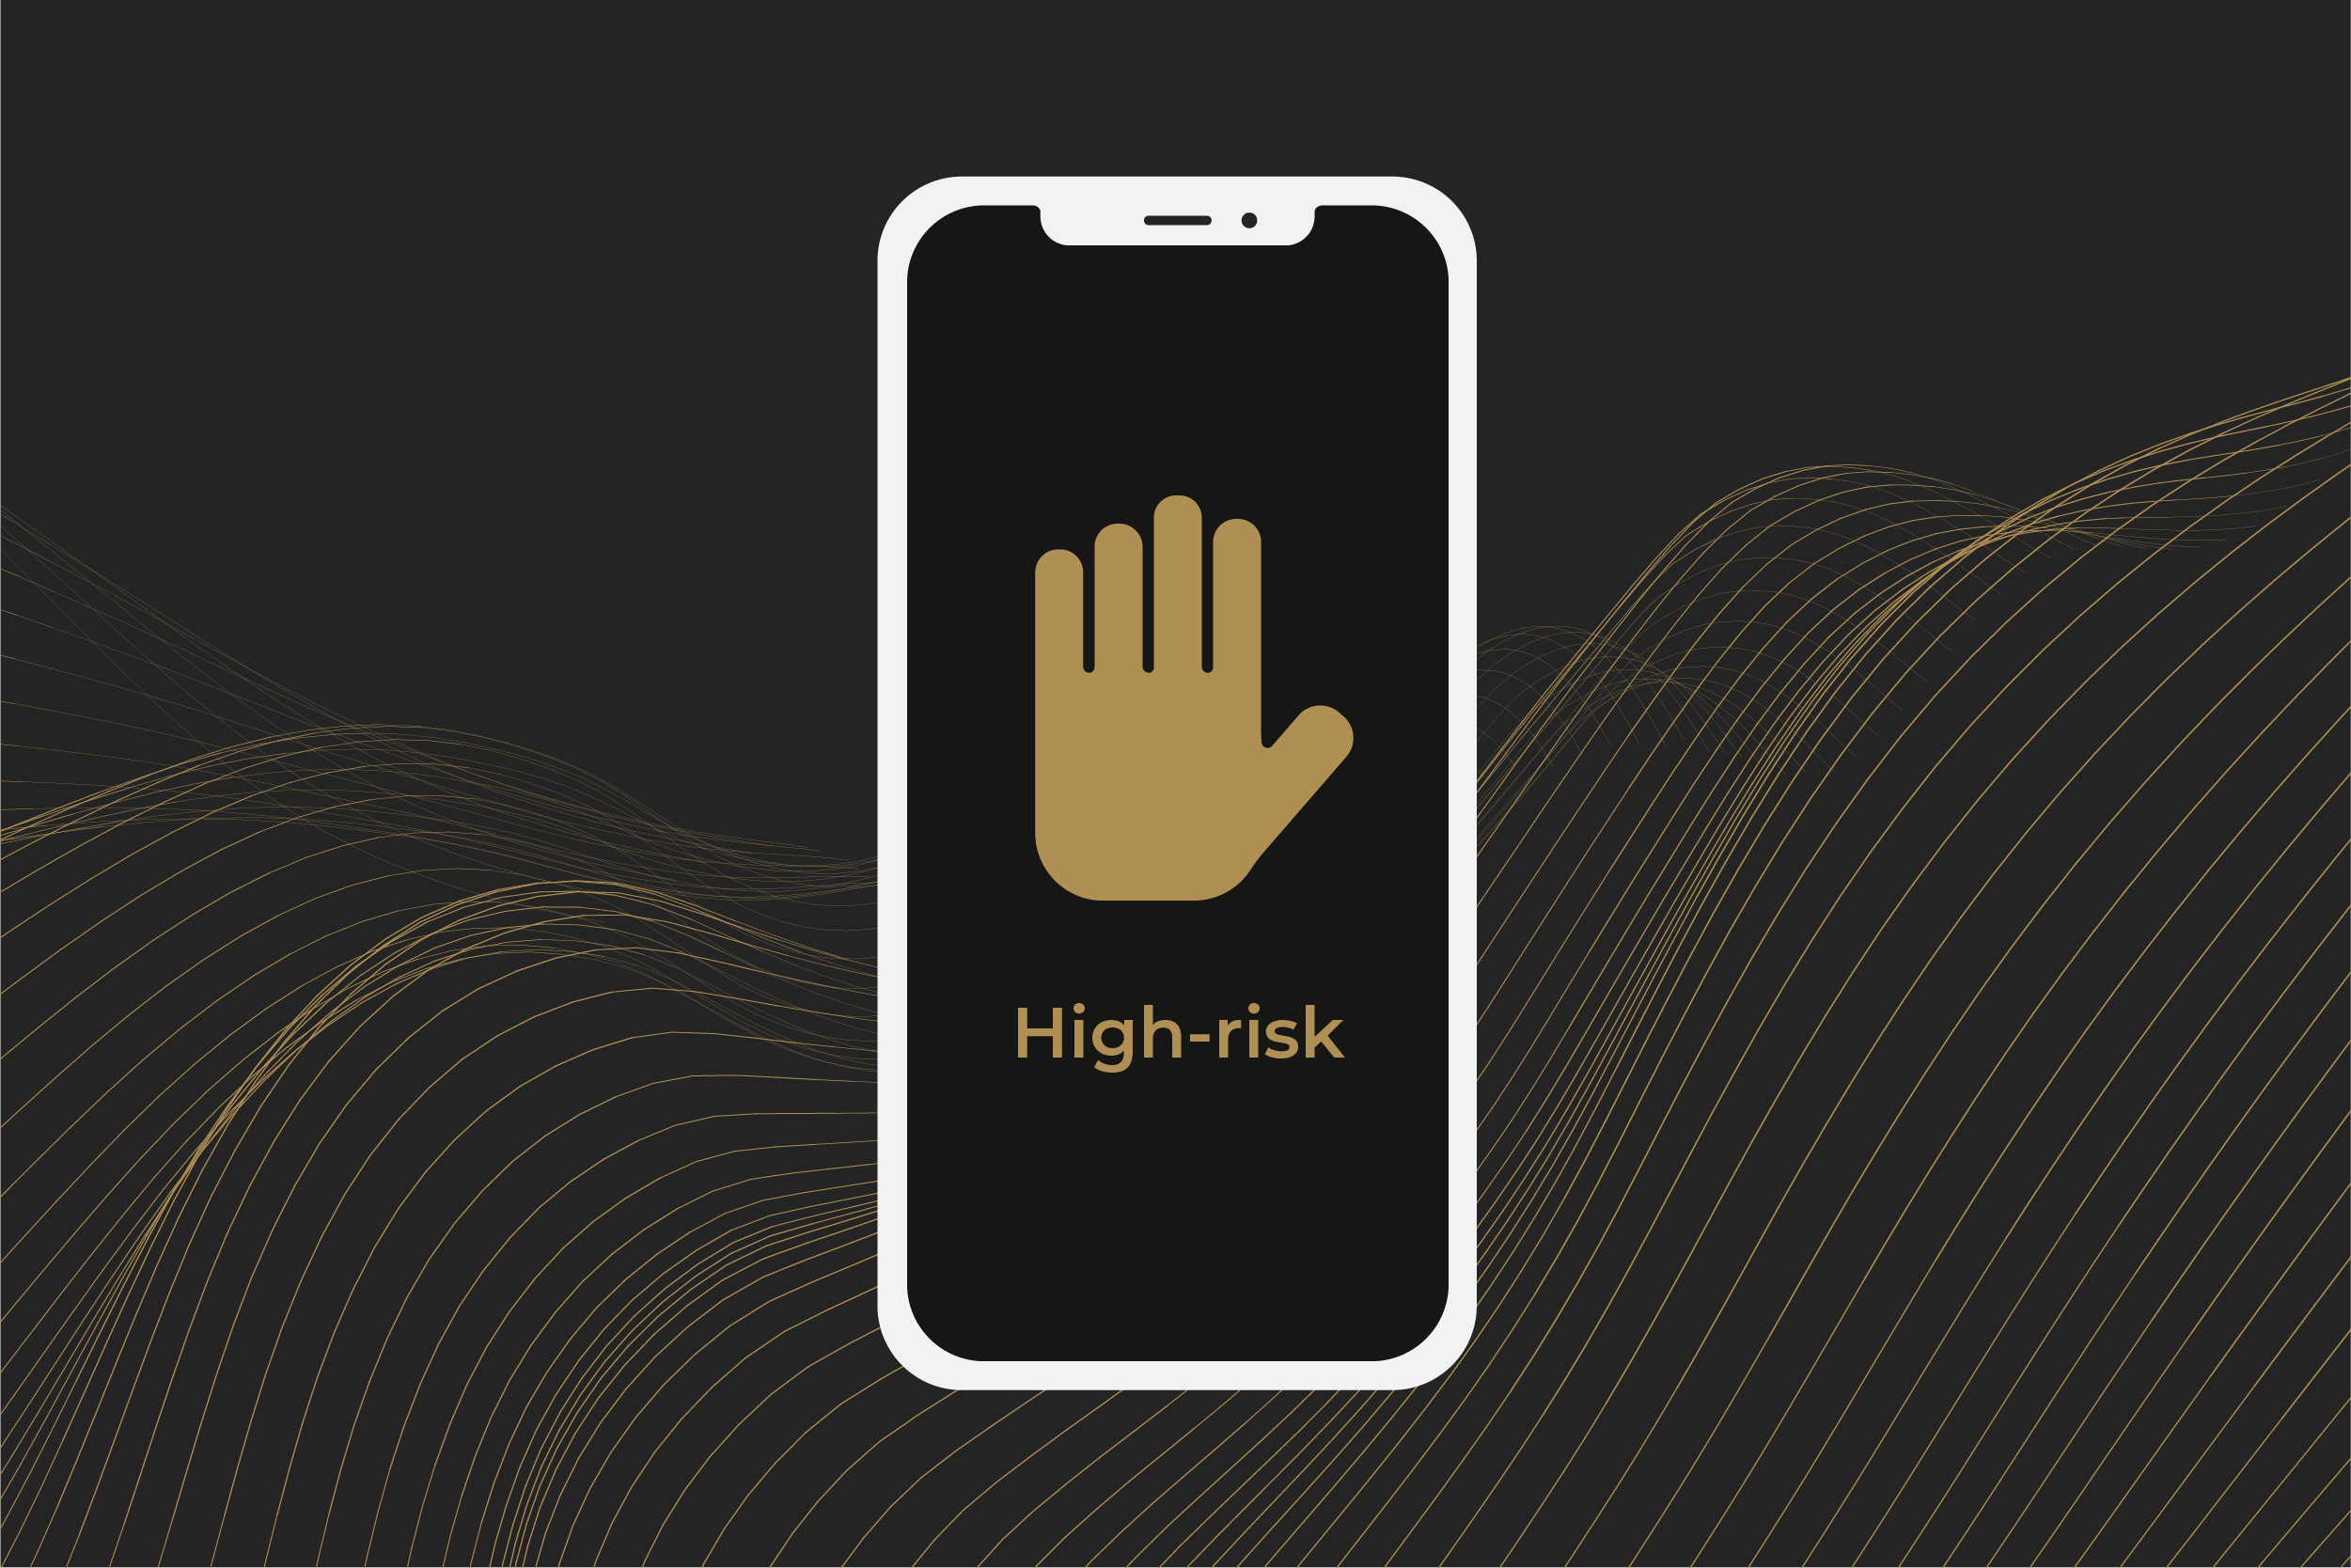 What is a high-risk merchant account?